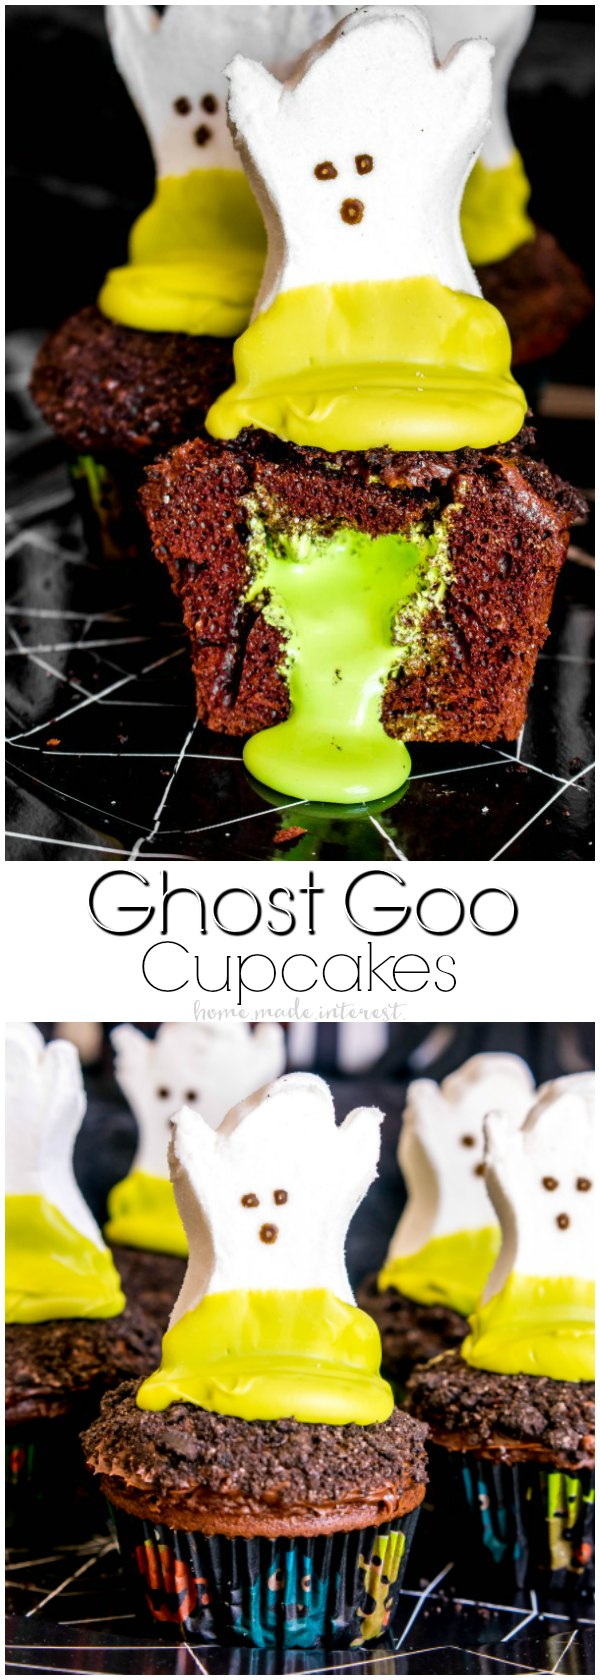 Craveyard Halloween Party | This fun kids' Halloween Party is full of all sorts of craveyard goodies. The ghost goo cupcakes are my favorite Halloween dessert recipe. The Halloween cupcakes are filled with green marshmallow slime that oozes out when you bite into them. We've also got a fun Halloween drink idea. This Halloween punch recipe is a bright green swamp water that guests are going to love! Lots of fun Halloween party decorations and Halloween party ideas that kids will love!